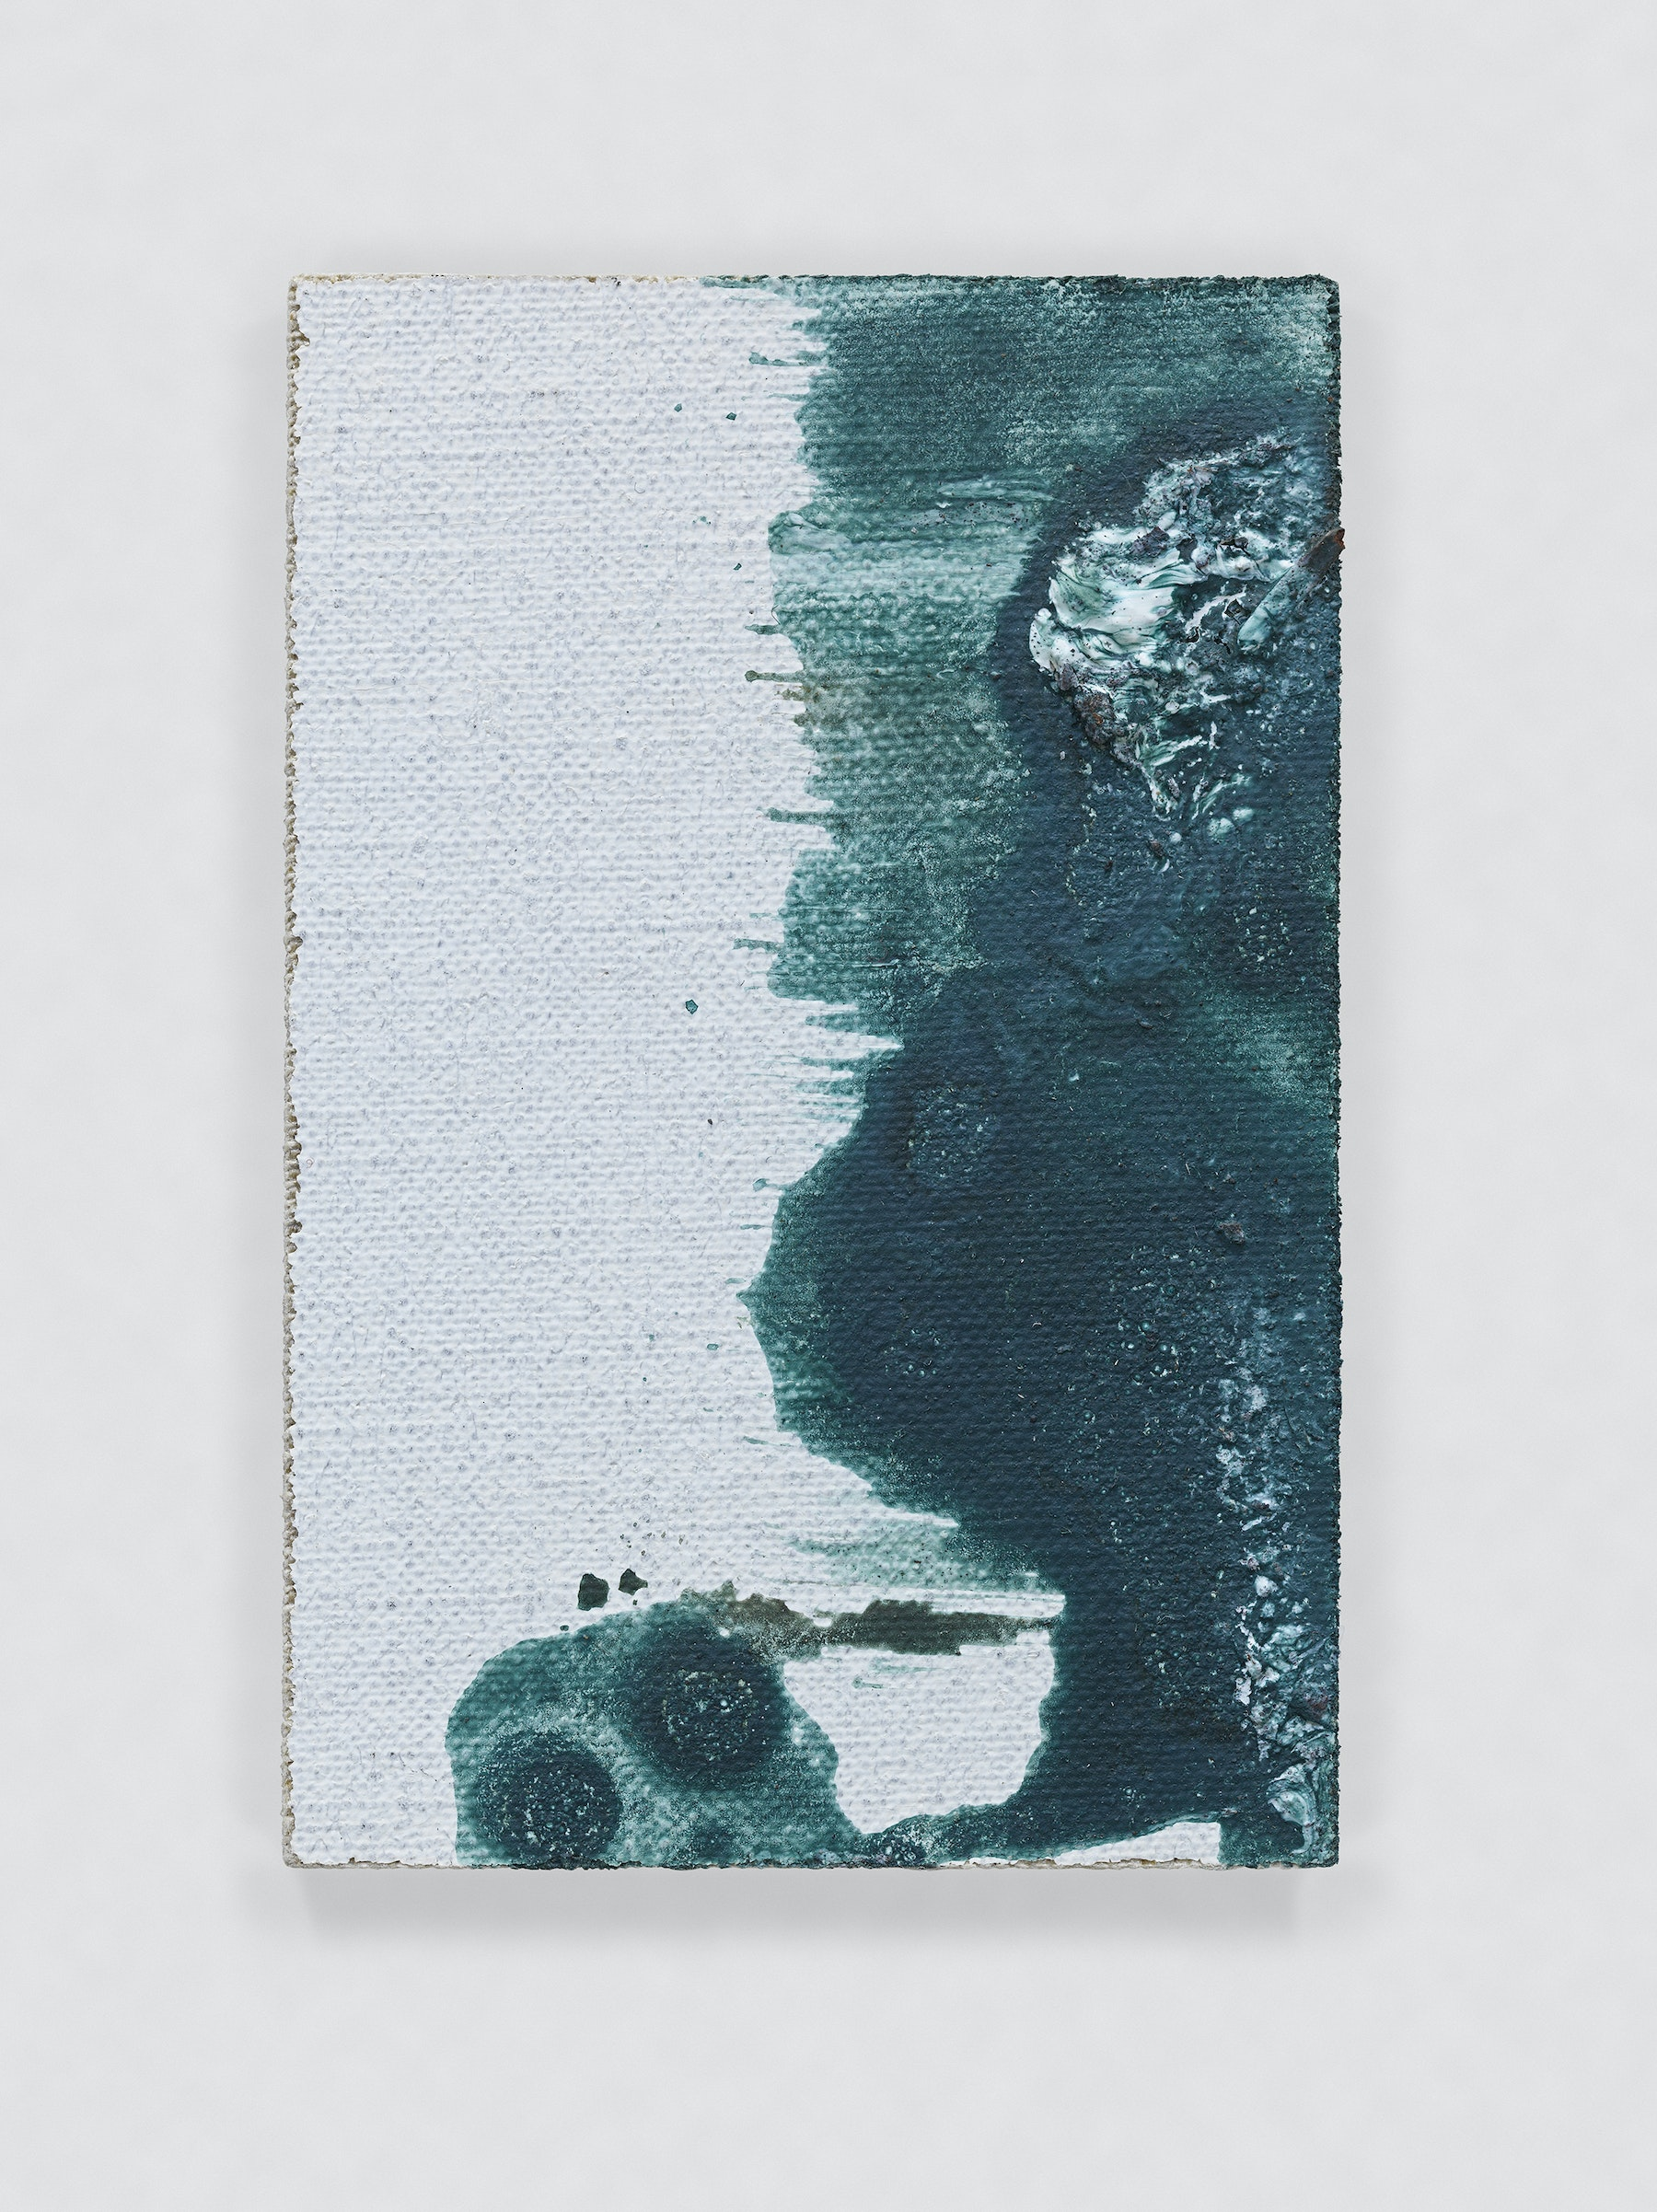 """Louise Fishman """"UNTITLED,"""" 2014 Oil on acrylic gesso primed cotton canvas 3 x 2"""" [HxW] (7.62 x 5.08 cm) Inventory #FIS150 Courtesy of the artist and Vielmetter Los Angeles Photo credit: Genevieve Hanson Signed and dated on verso"""